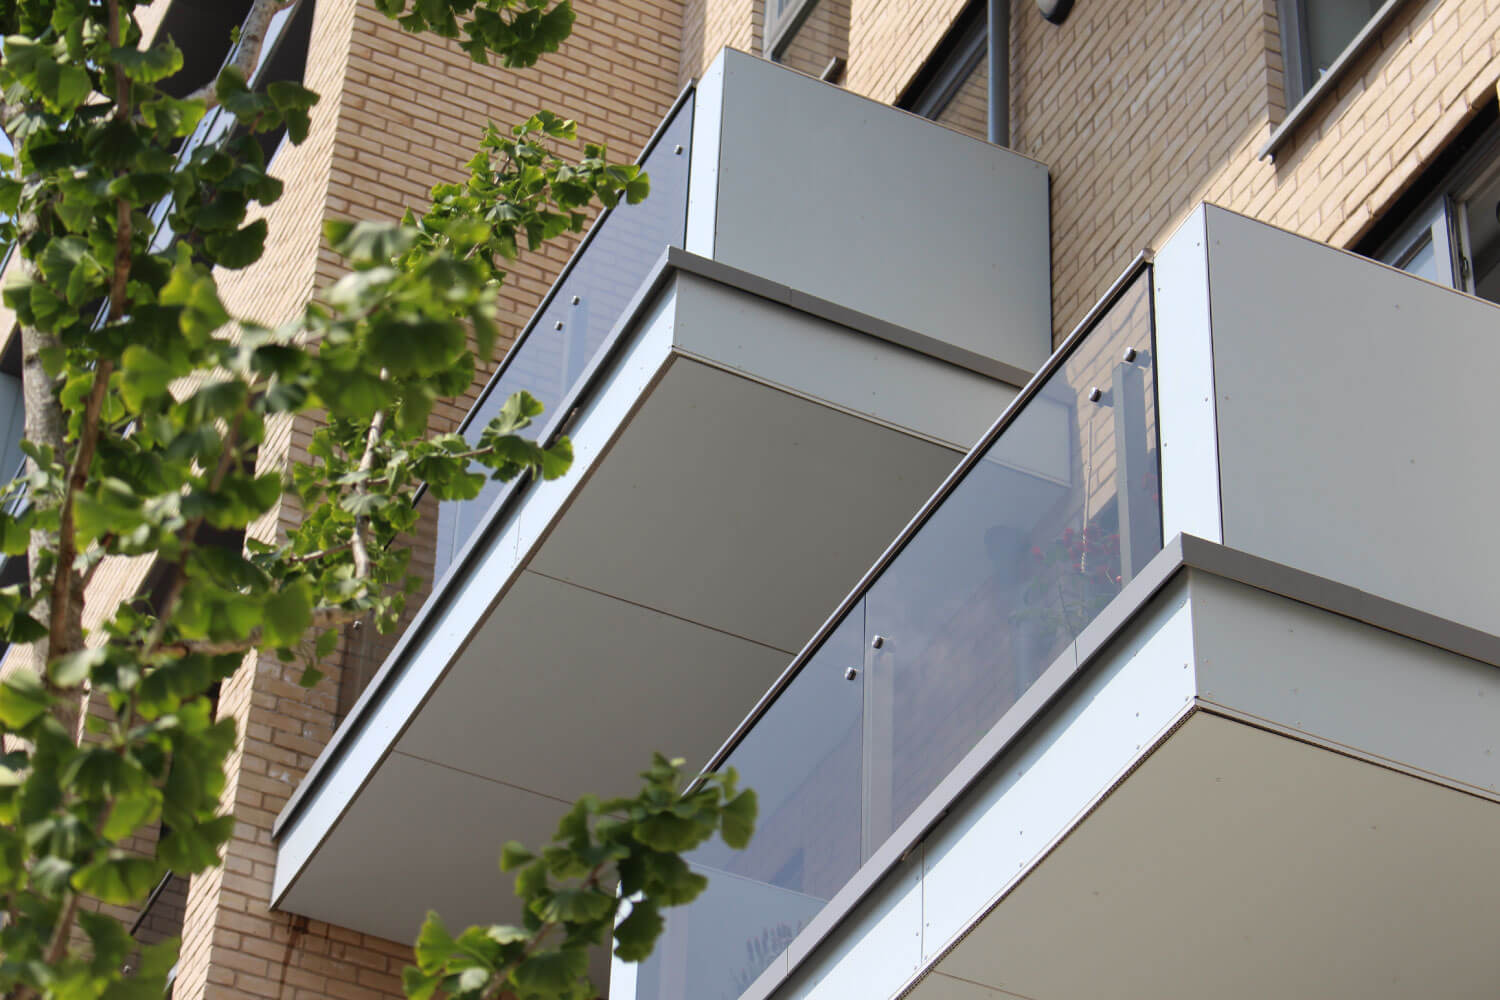 NX Gate commercial glass supplier London UK